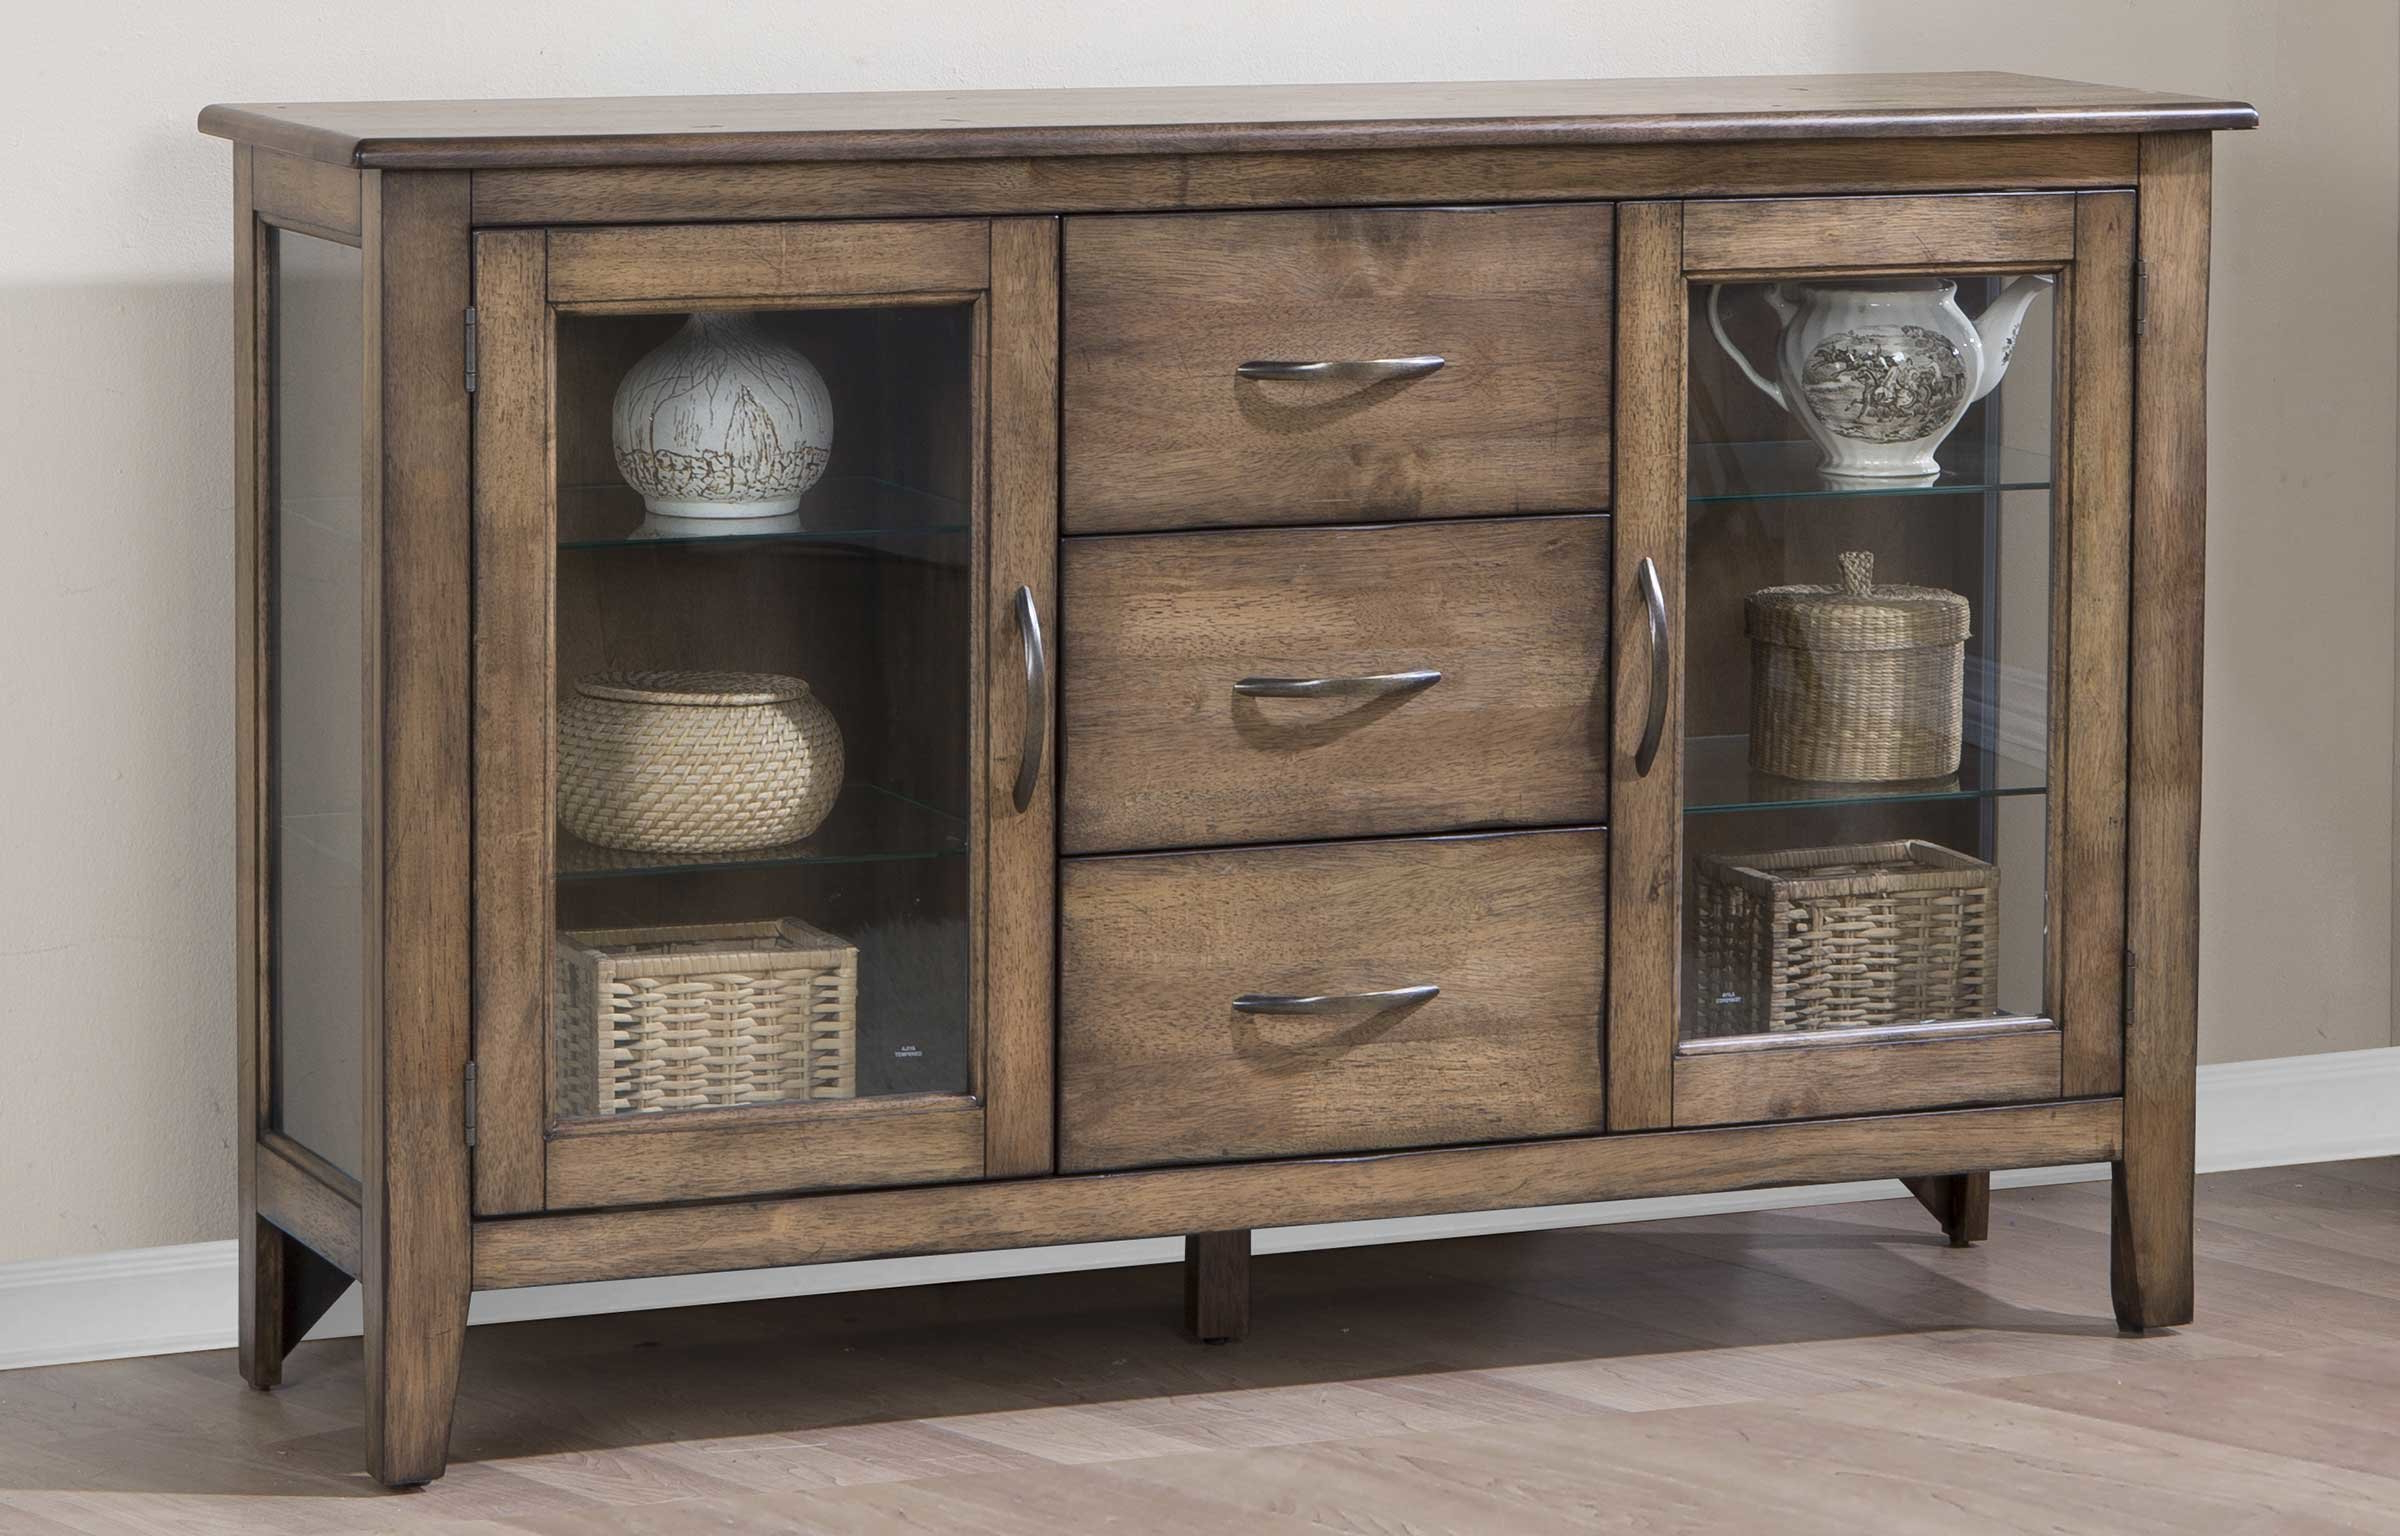 Sideboards & Buffet Tables | Joss & Main Intended For Dillen Sideboards (View 19 of 20)